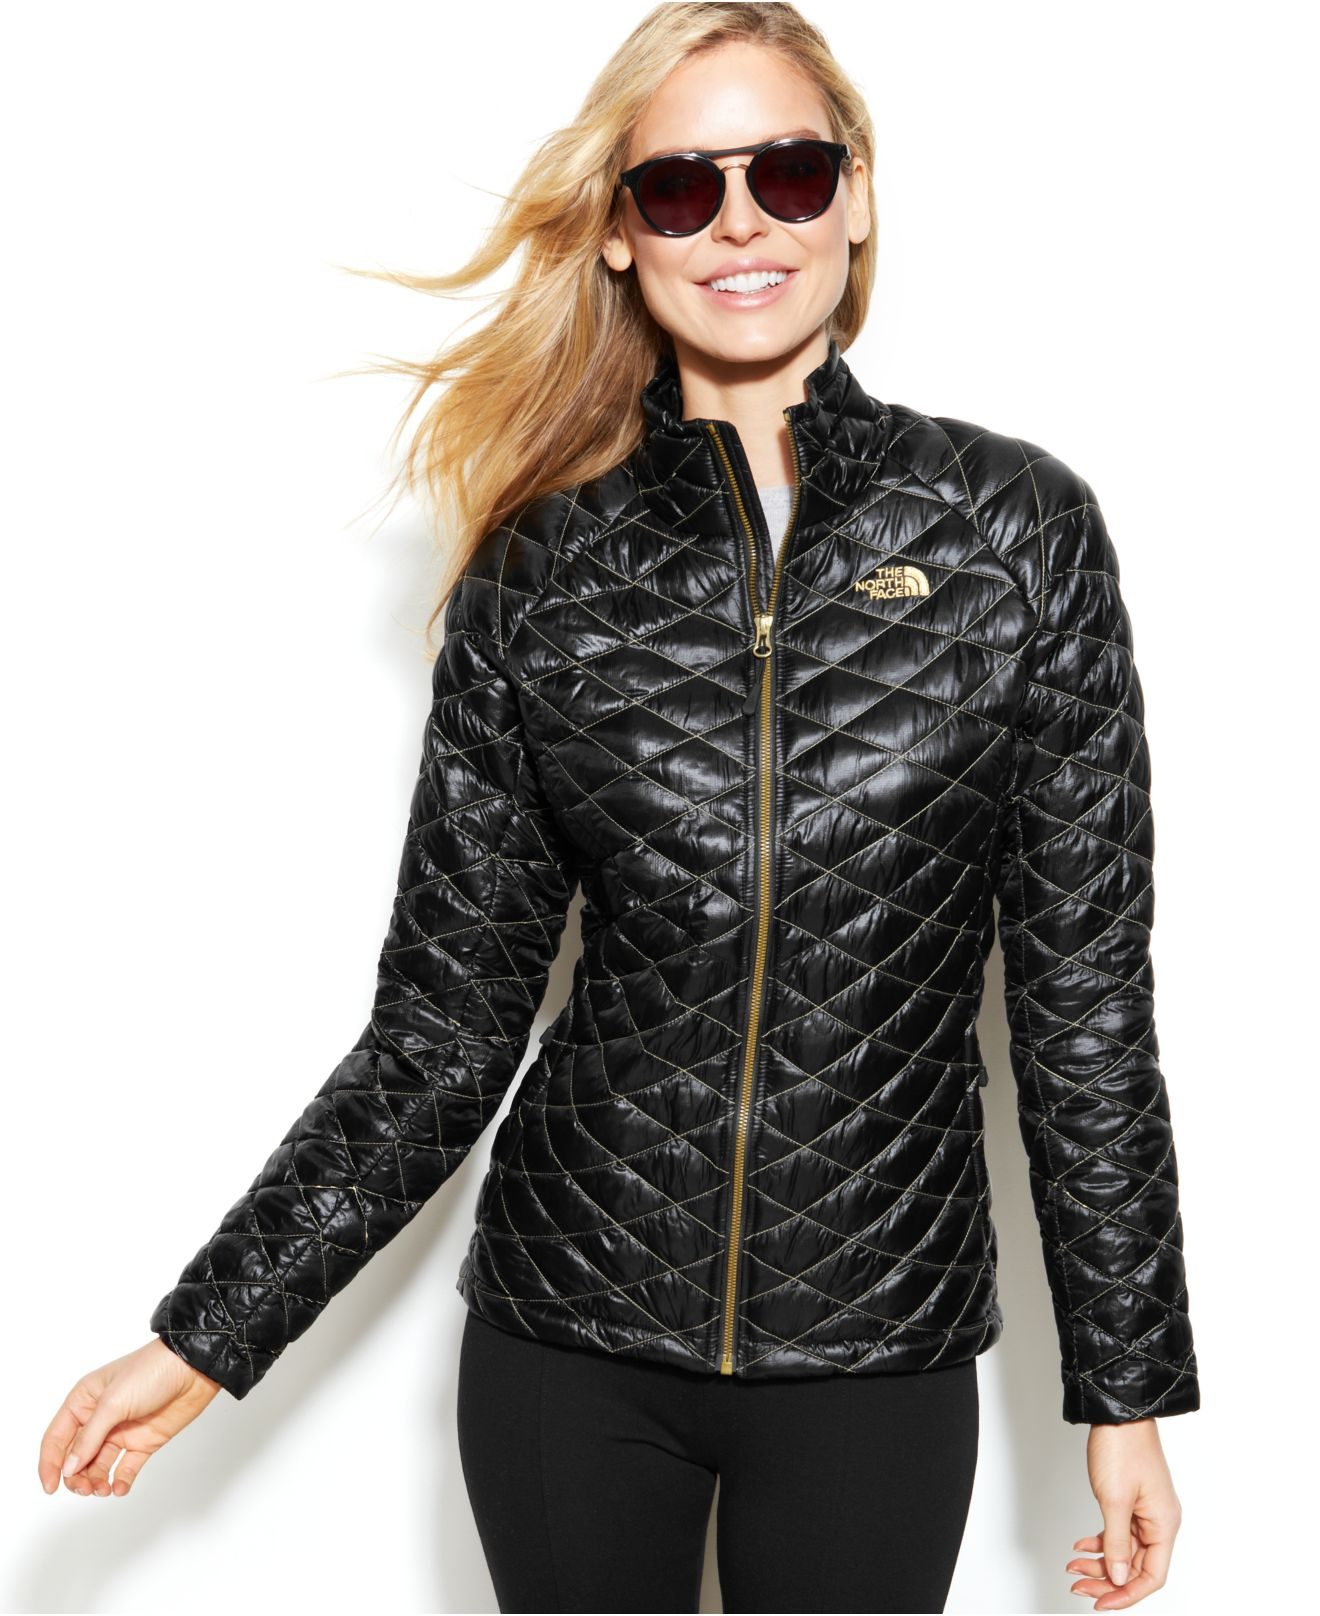 Black and gold quilted leather jacket